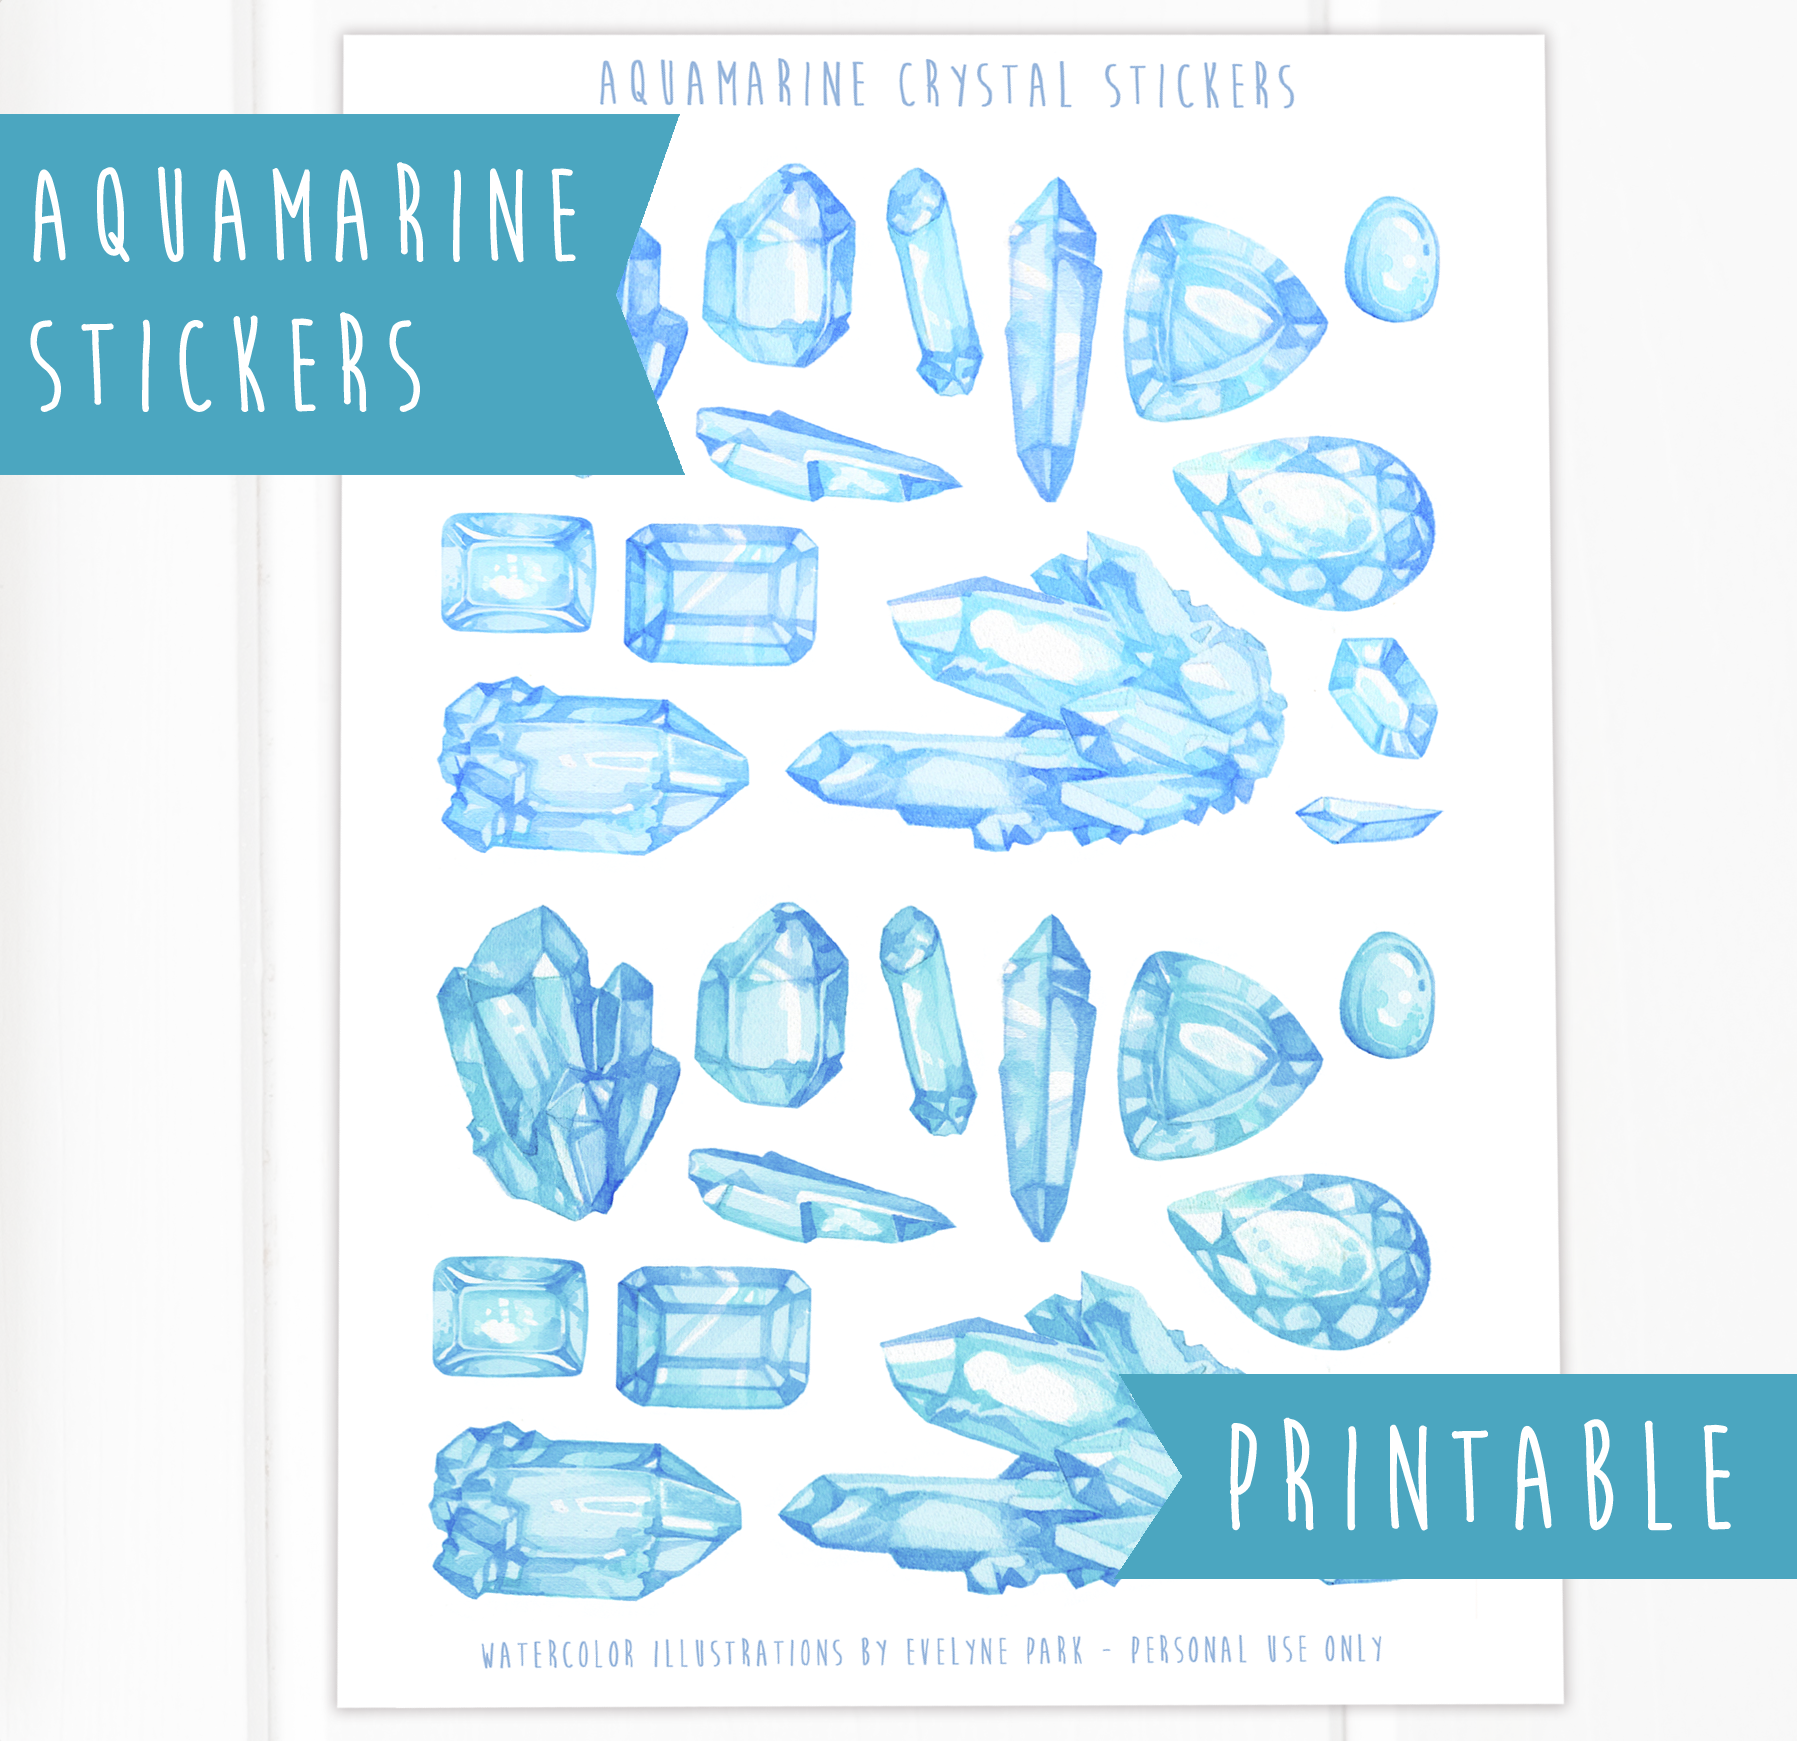 Printable version with a color variation for my aquamarine gemstones. If you're into DIY projects and have some sticker paper at the ready, you can print these yourself, as many times as you want. Crystal stickers look best printed on glossy sticker paper imo!